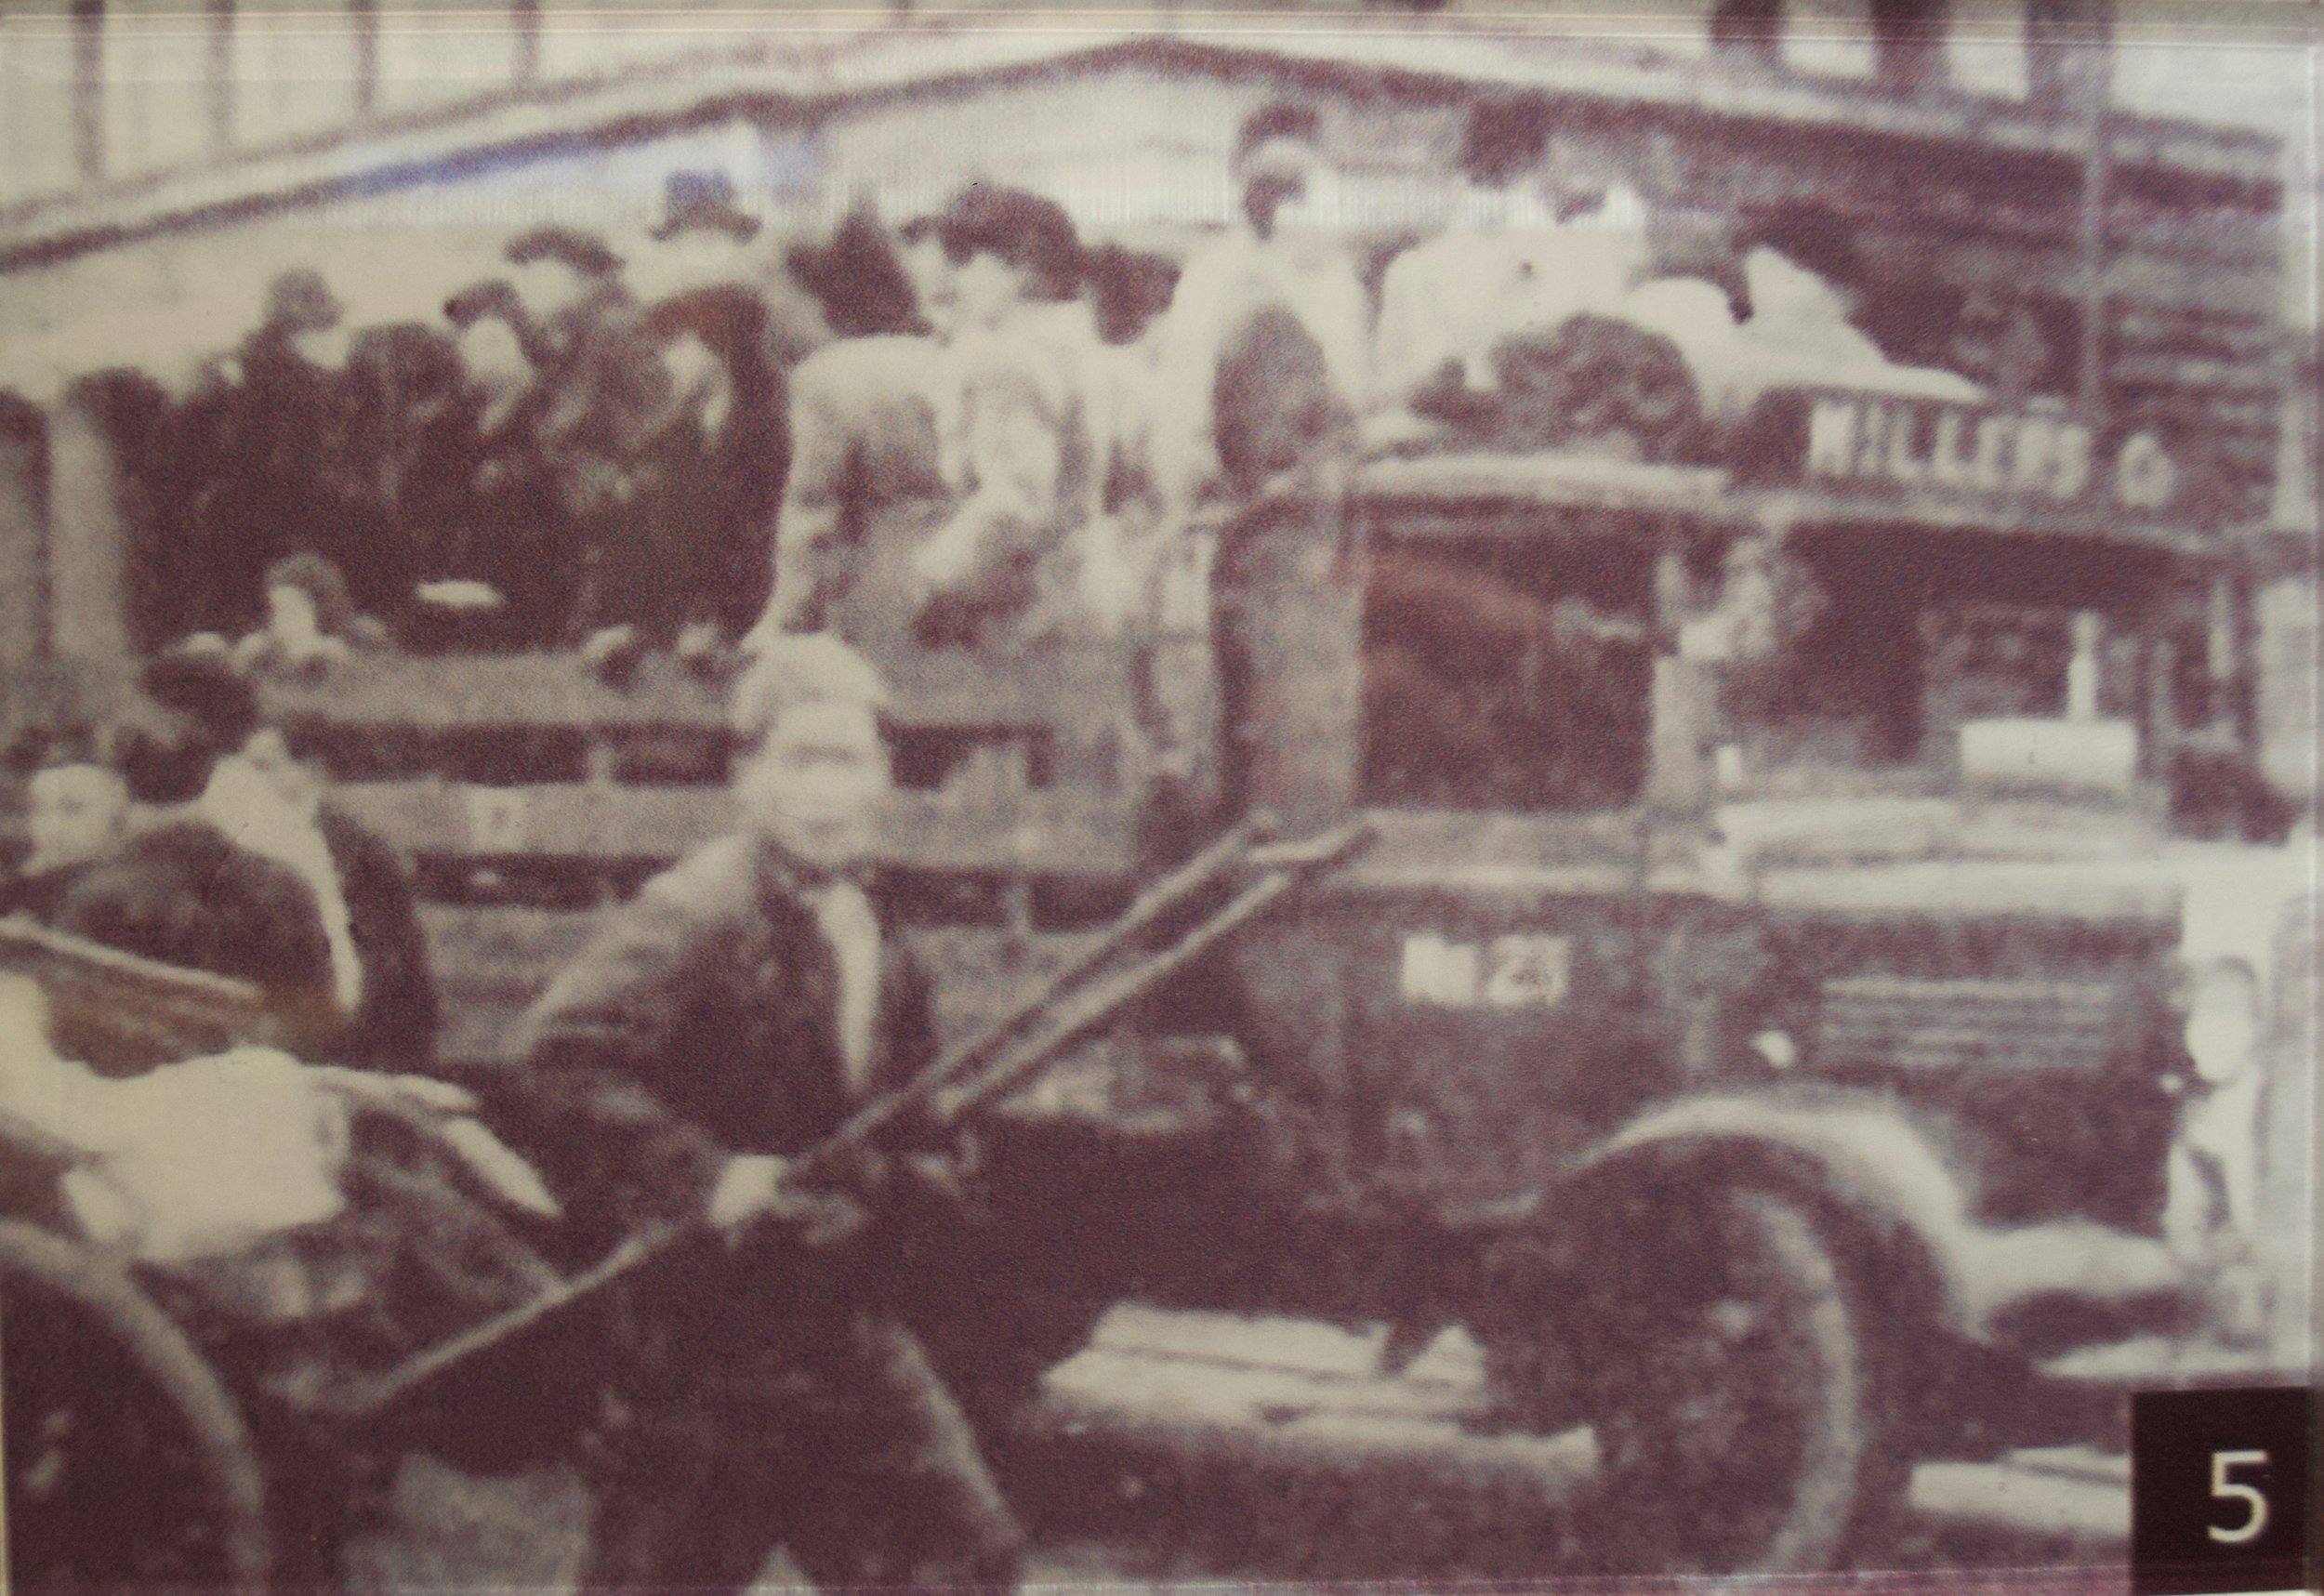 Volunteers sending refugees to one of the processing centres. [Shanghai Jewish Refugees Museum]